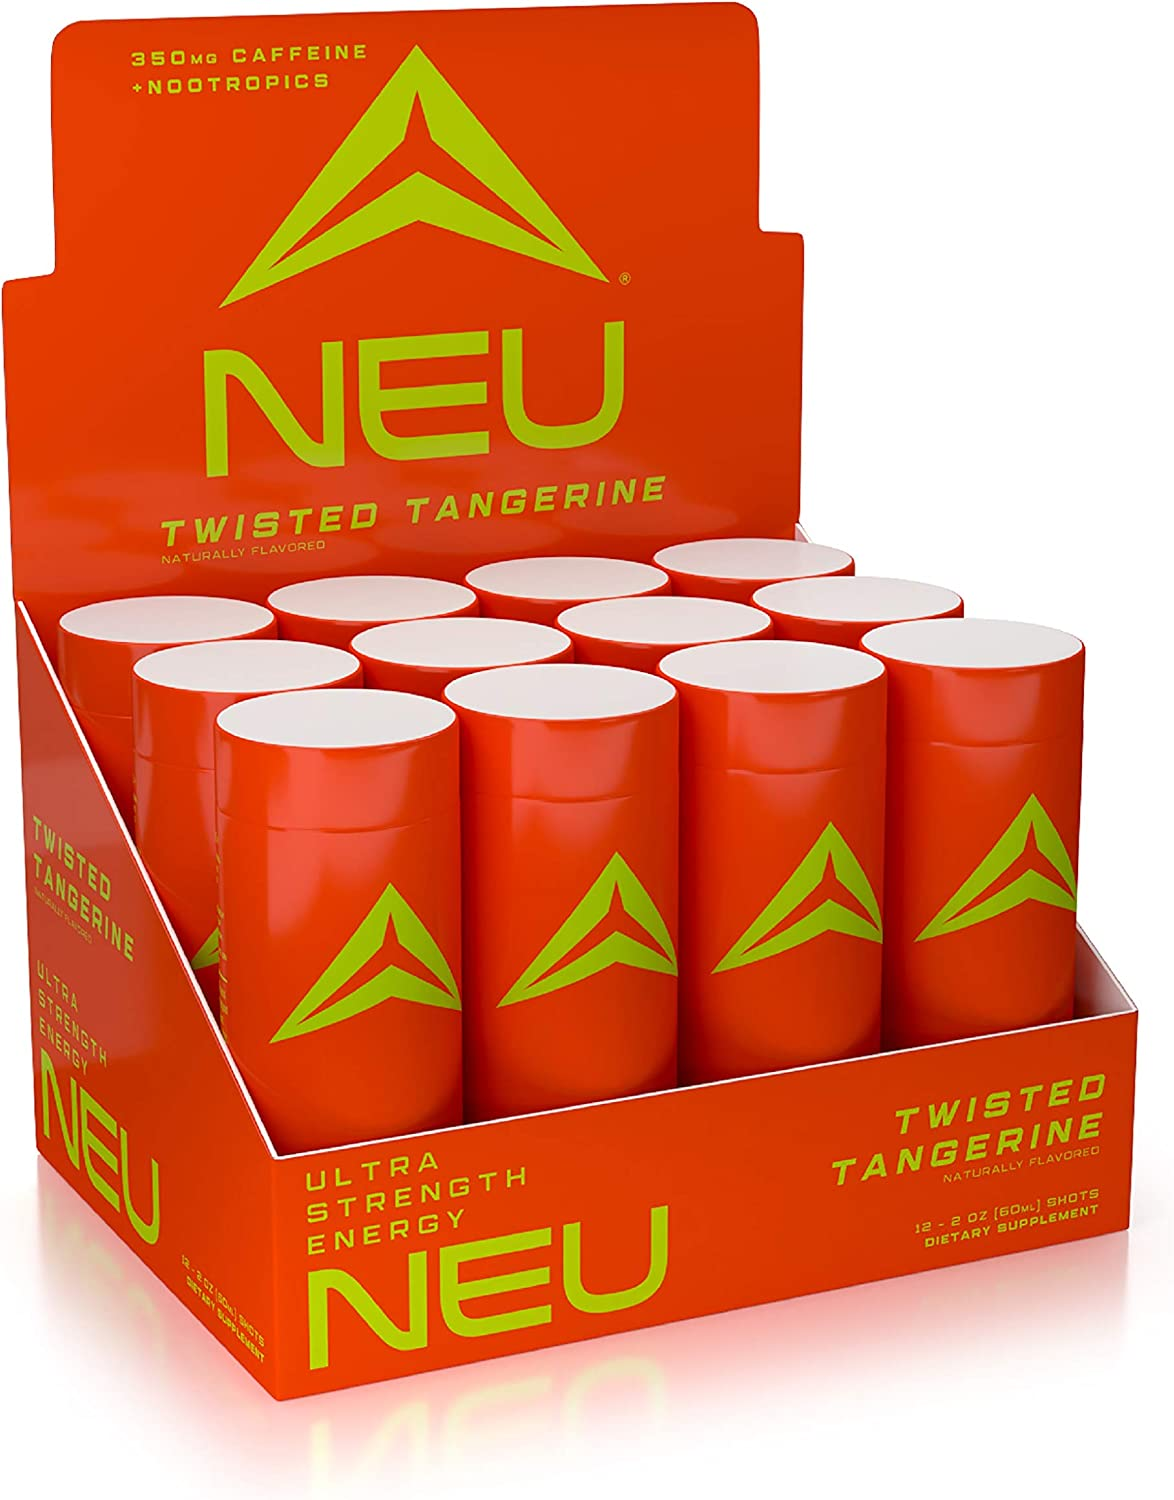 NEU Extra Strength National products Energy Max 89% OFF Shots Pre Nootr Drinks Workout